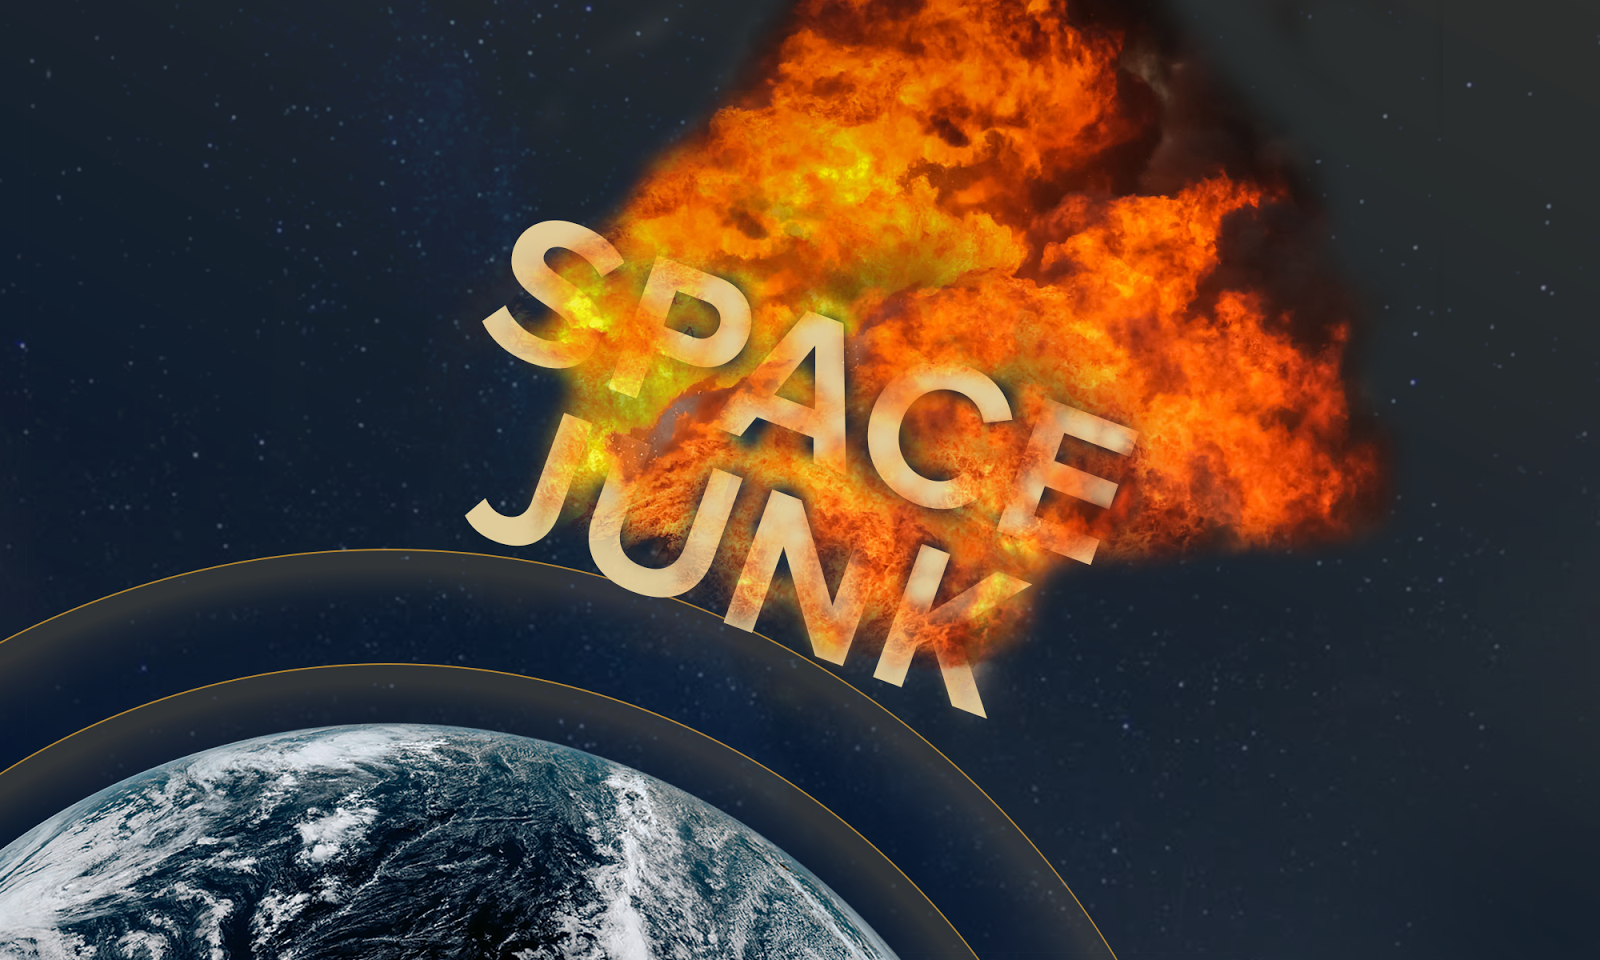 Space Junk Graphic Illustration